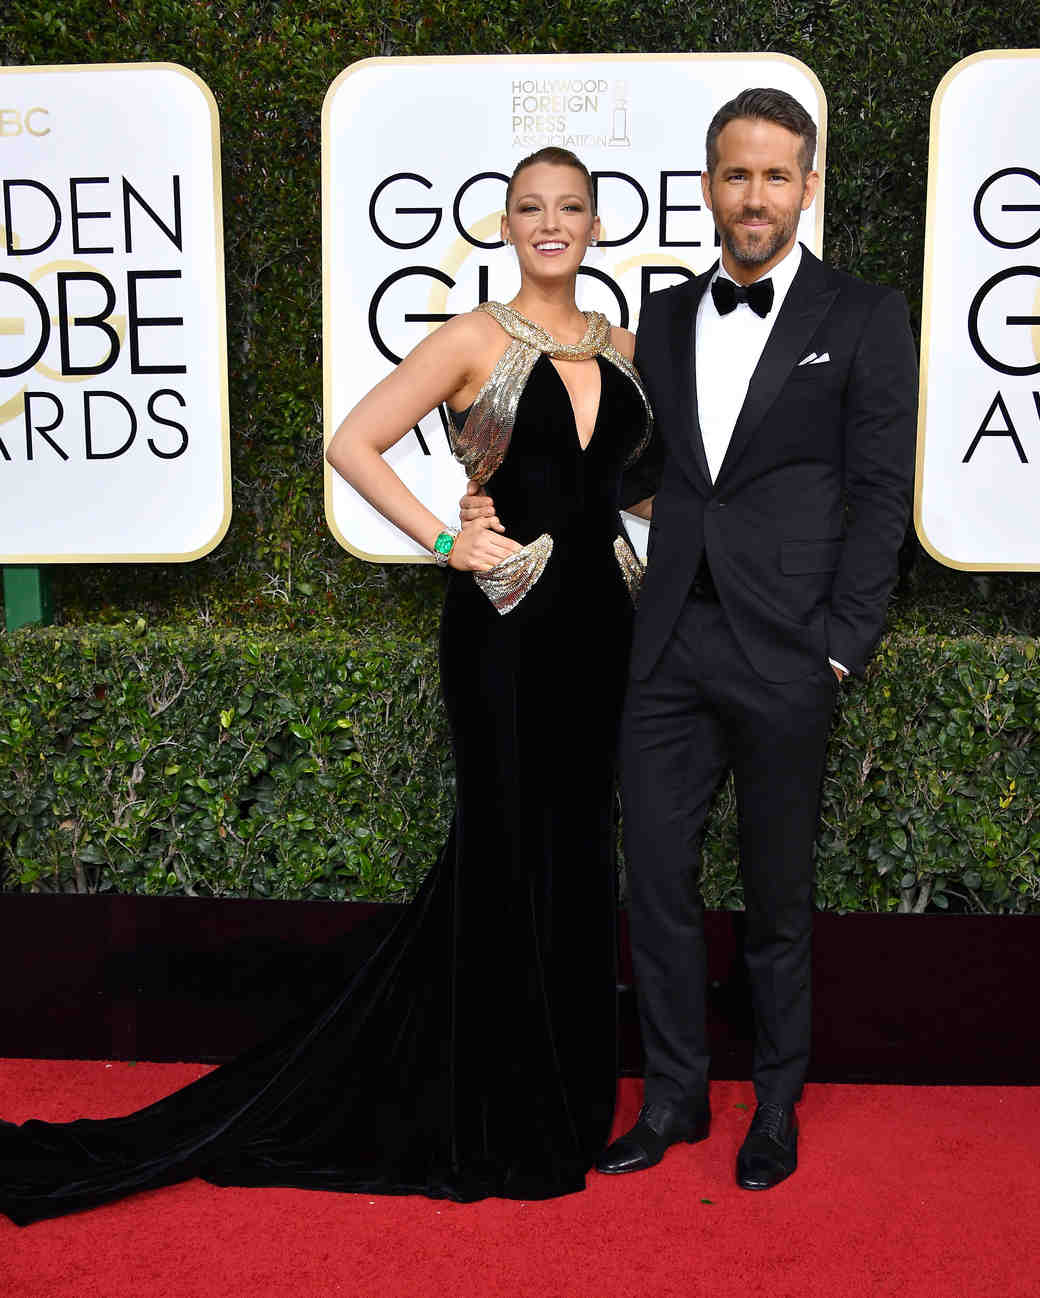 Blake Lively and Ryan Reynolds Golden Globes 2017